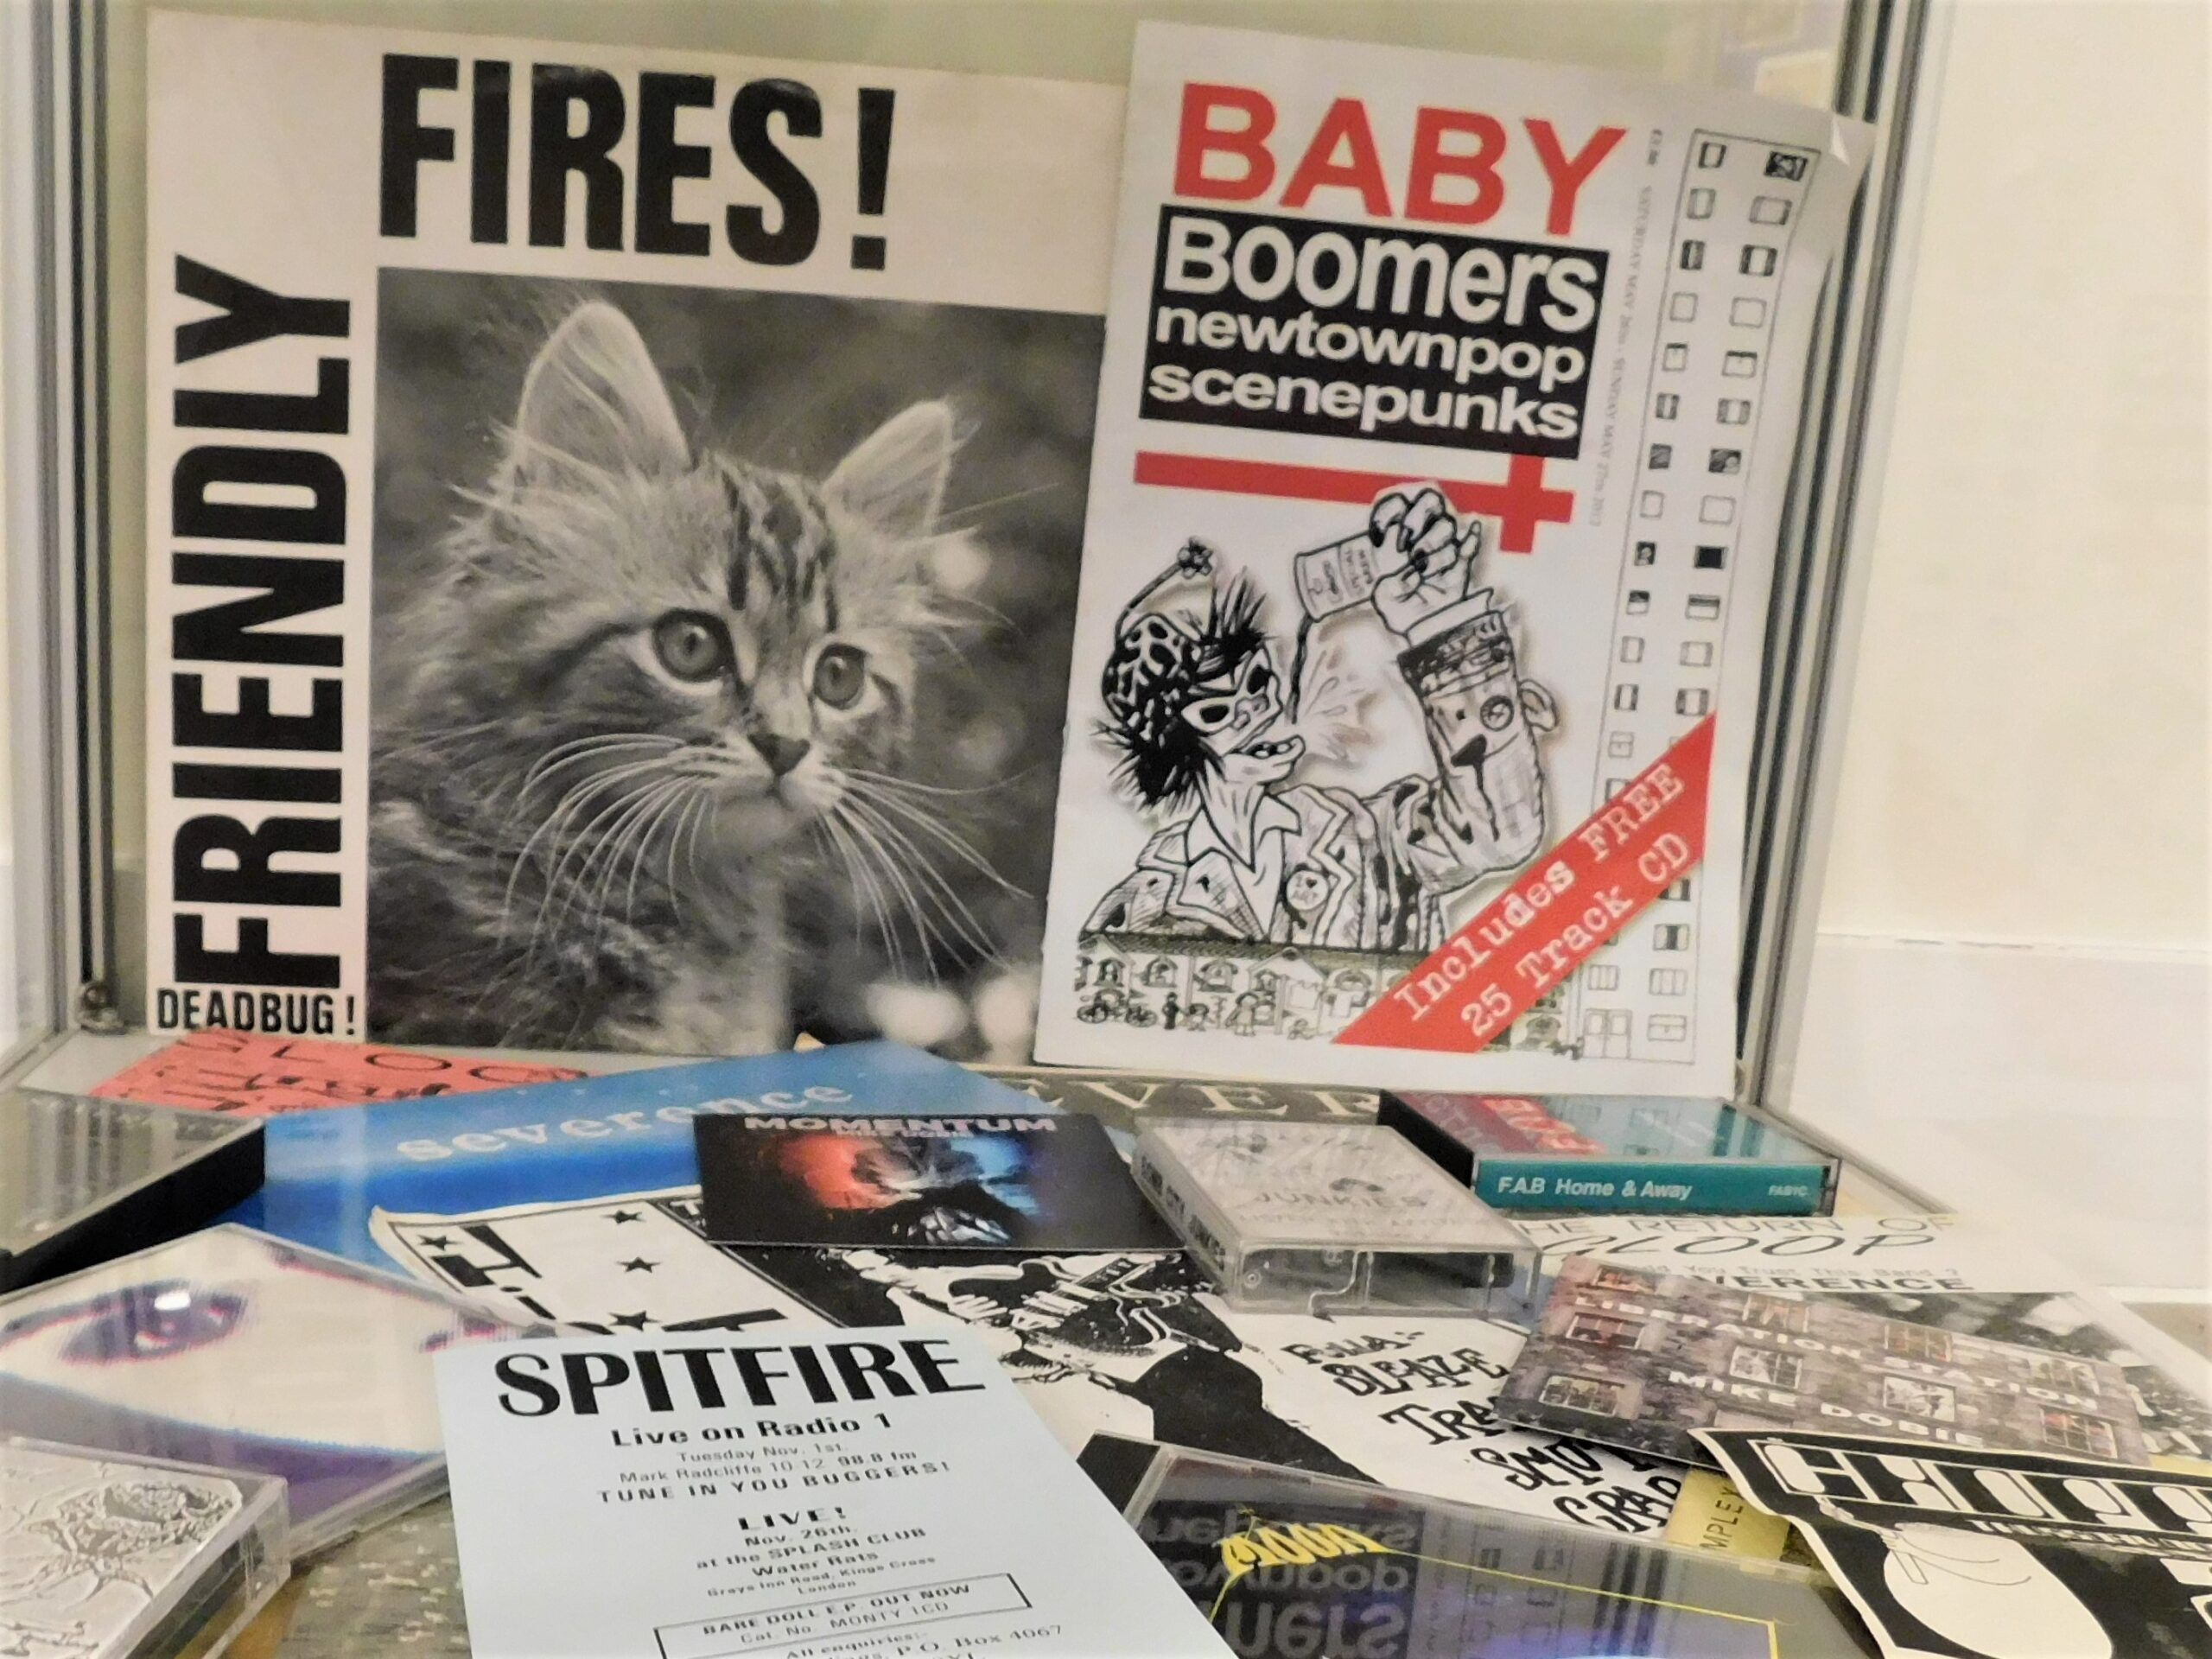 Collection of Records, CDs and flyers